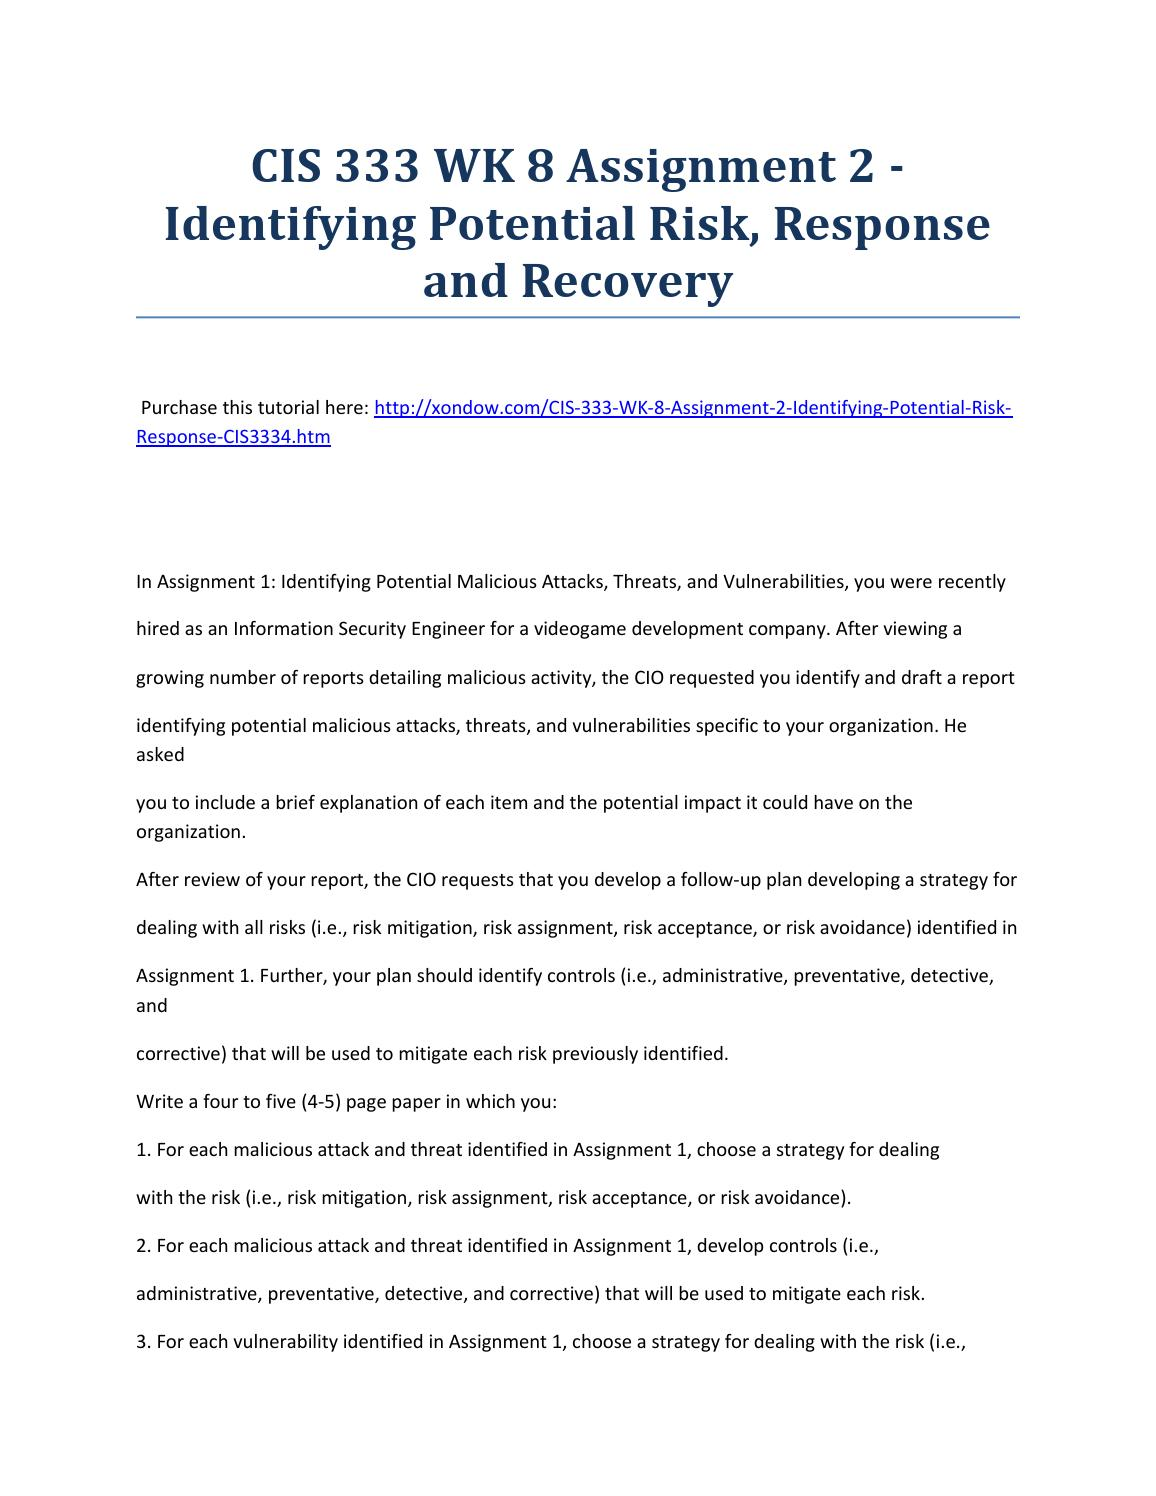 identifying potential risk response recovery Identify, protect, detect, respond, recover  to internal and external organizational resources, and risk response  the protect function supports the ability to limit or contain the impact of a potential cybersecurity event.